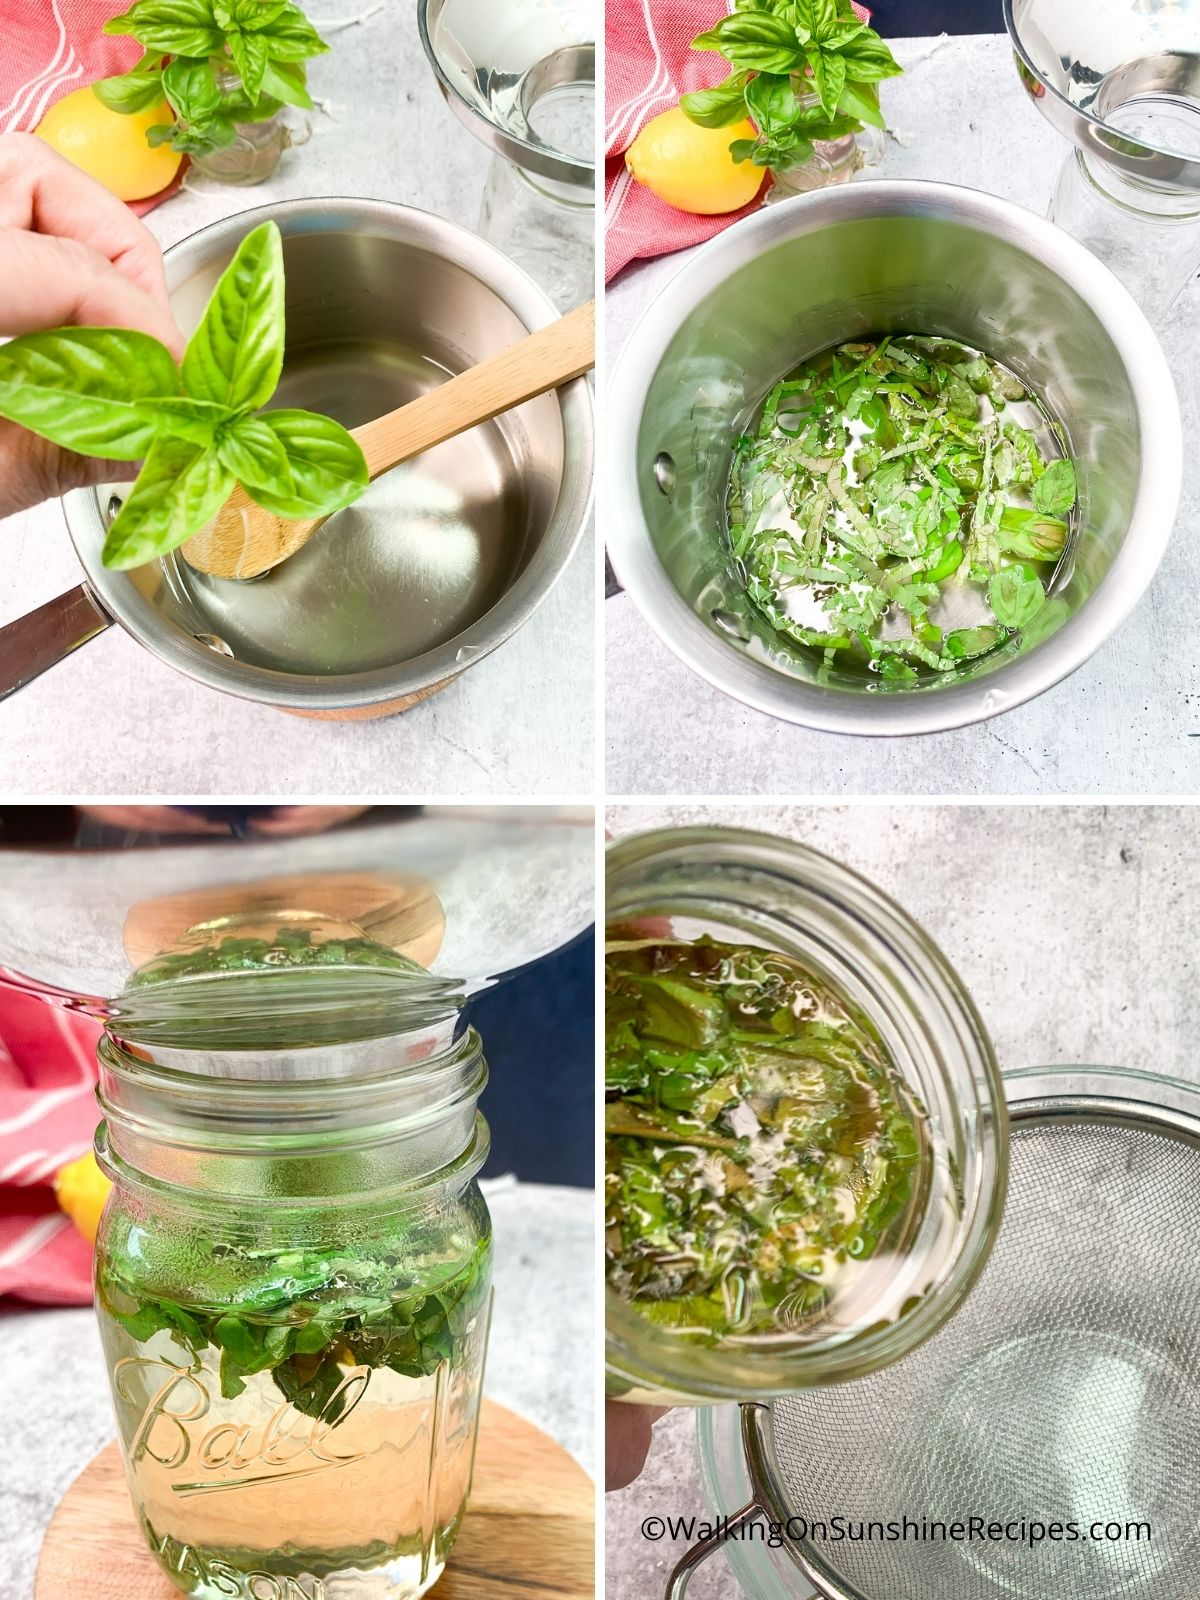 Add basil leaves to simple syrup.